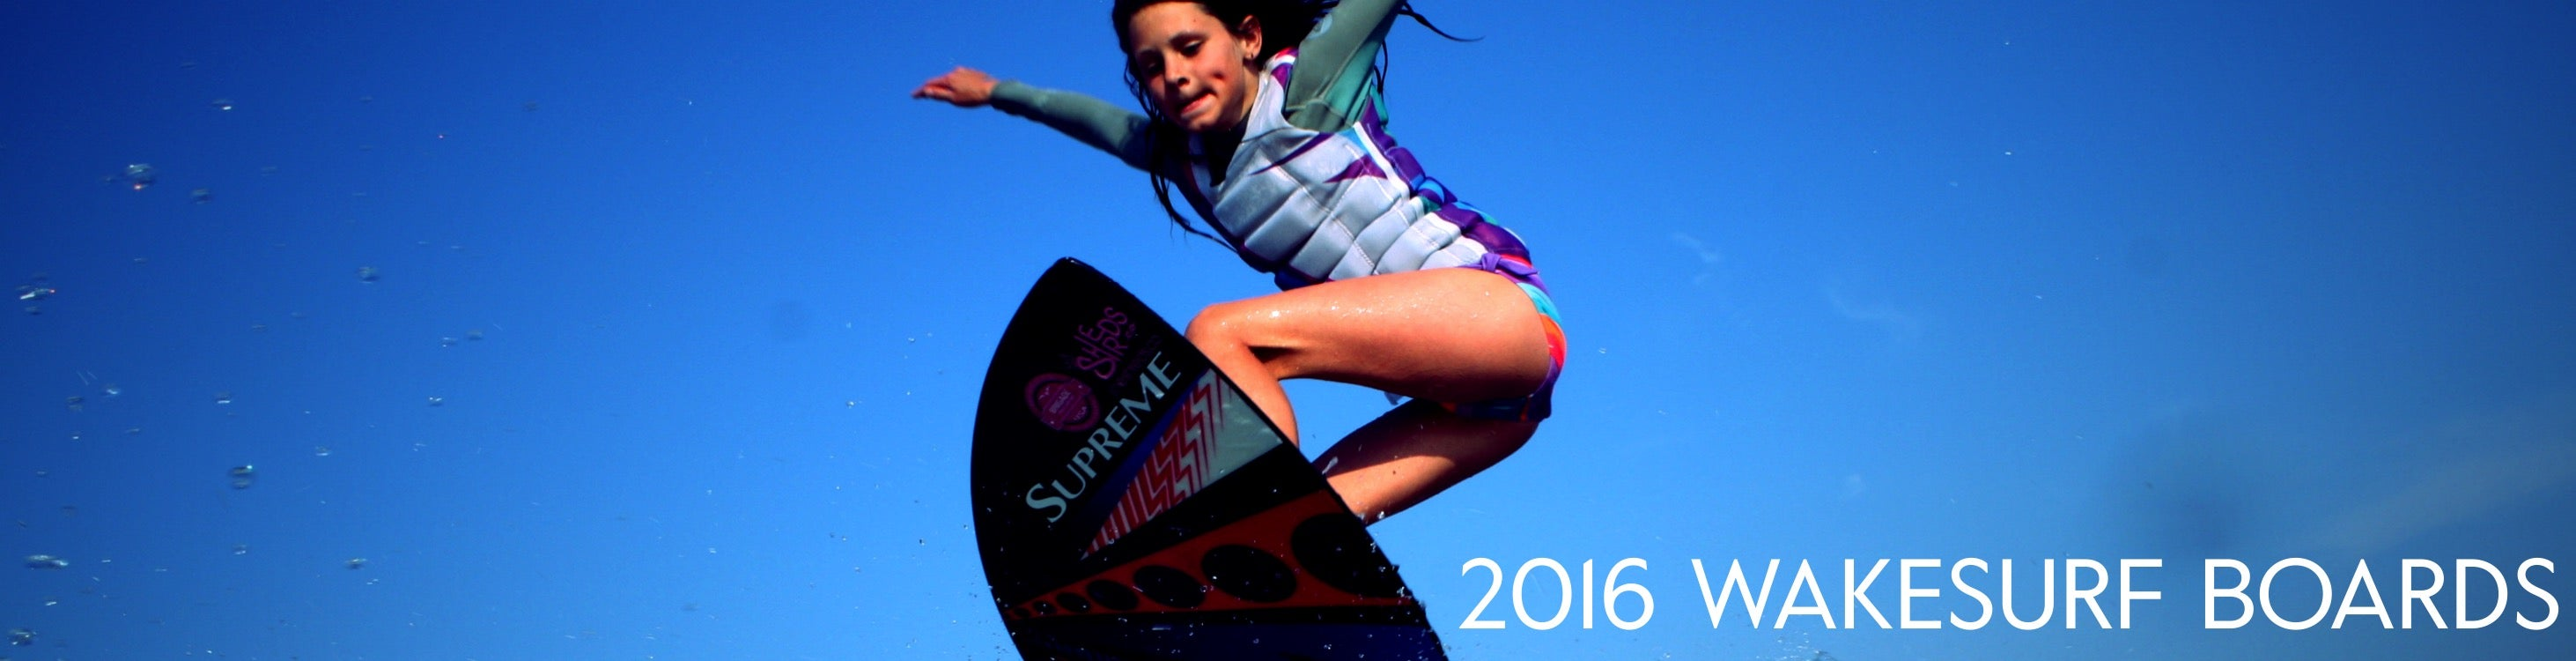 2016 WOMEN'S WAKESURF BOARDS